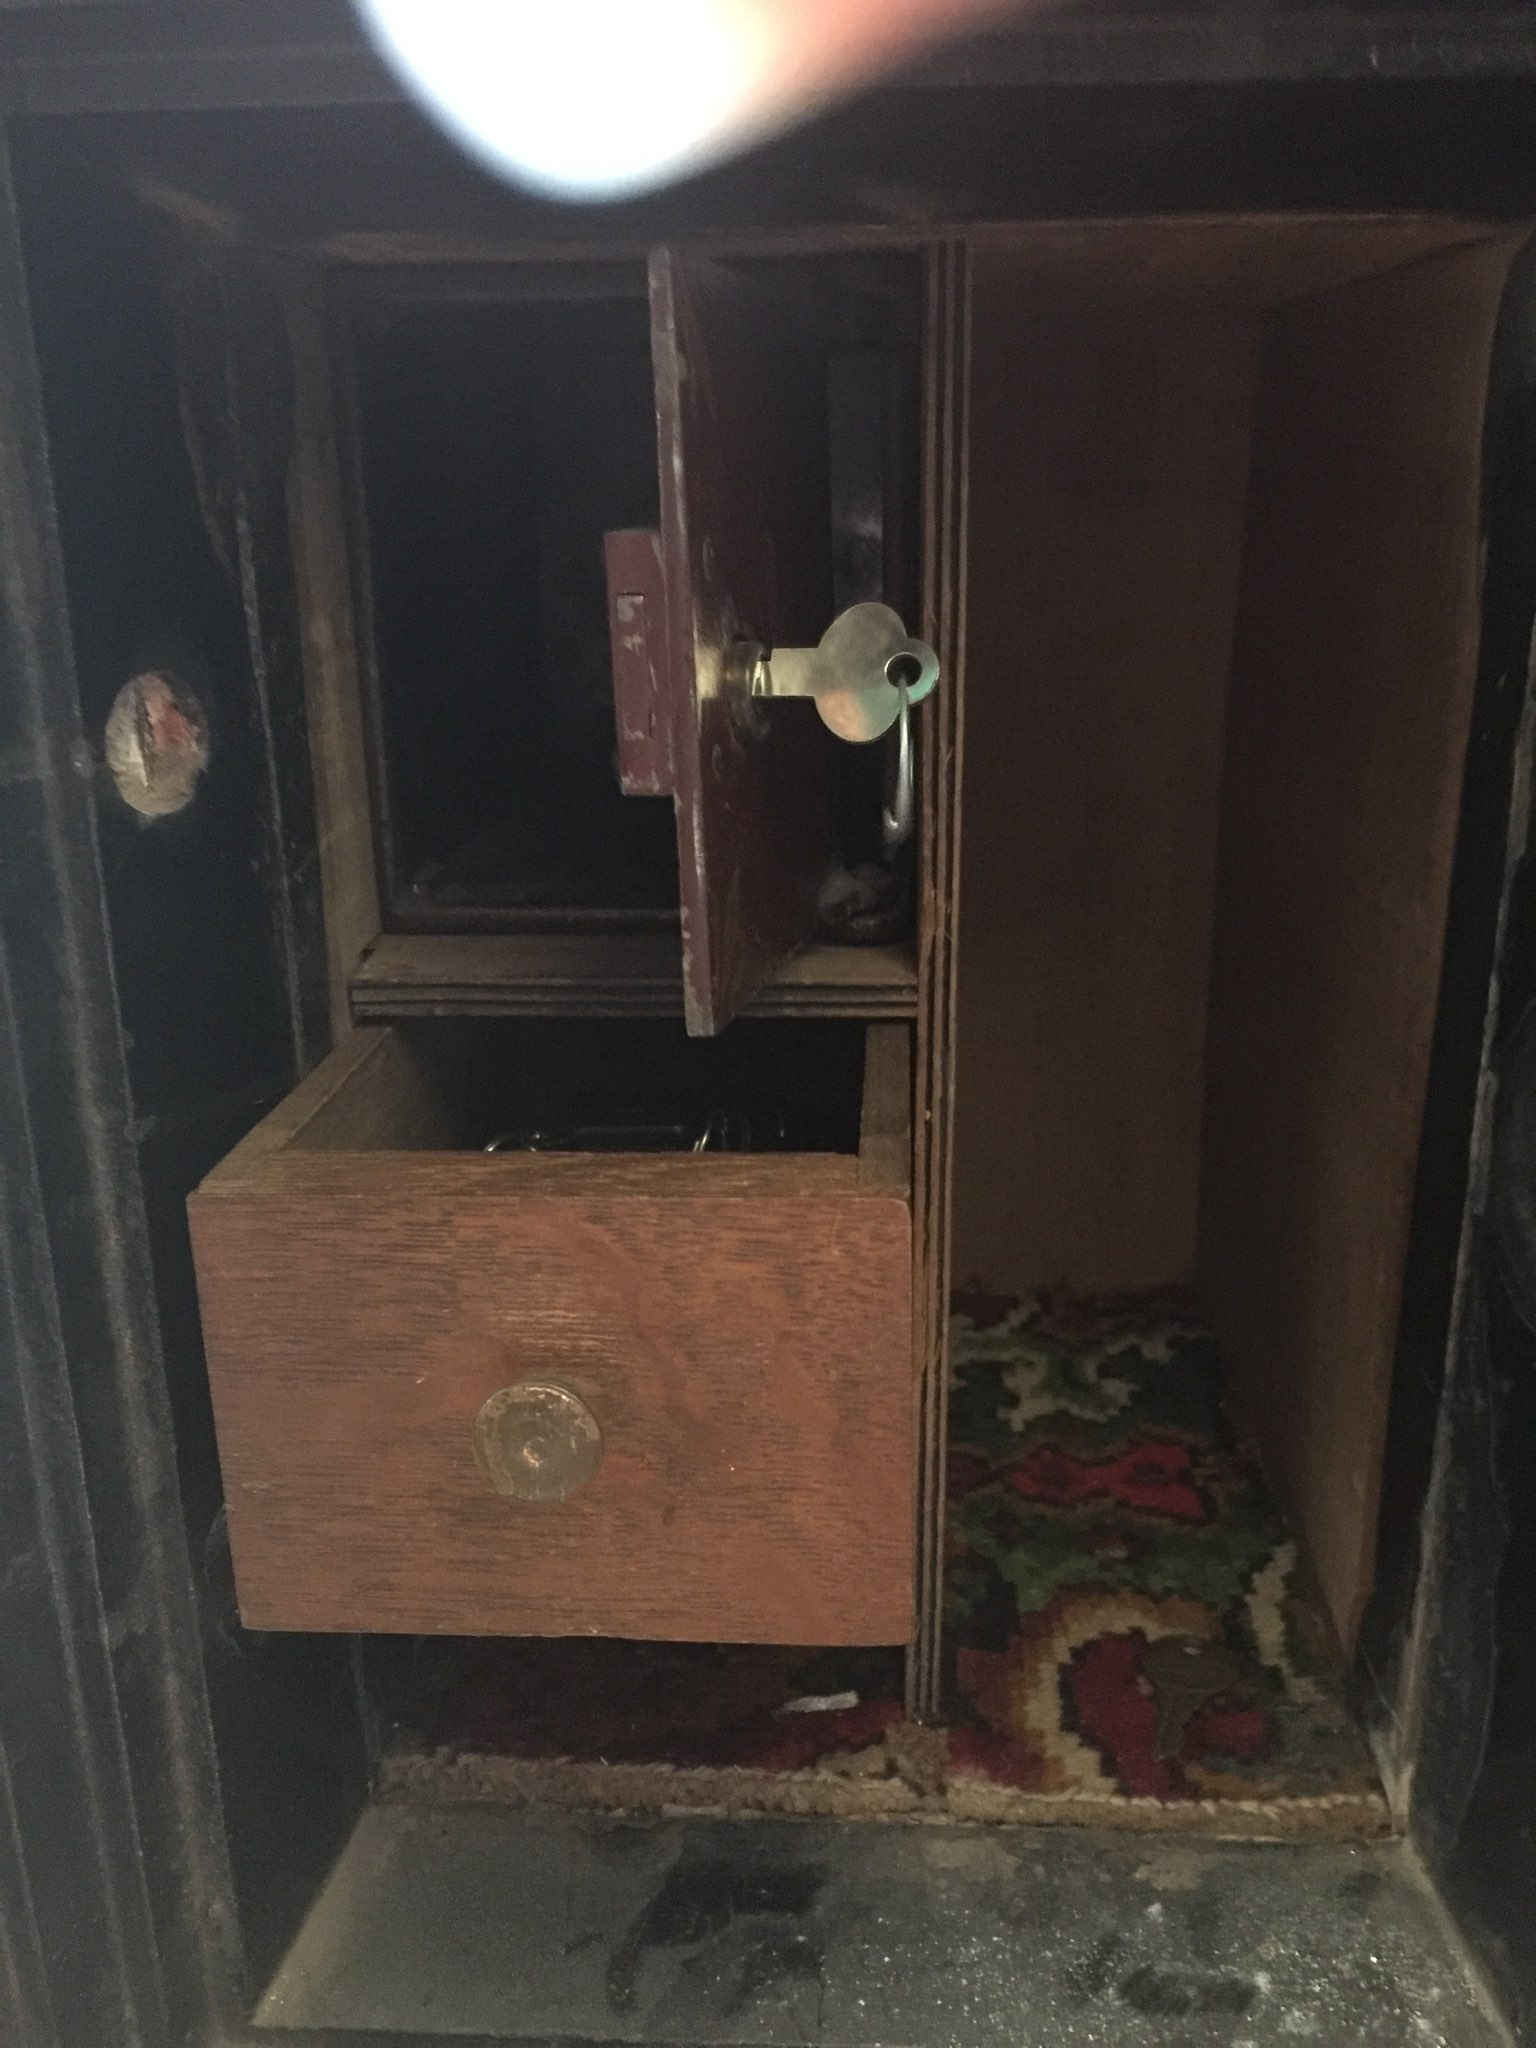 I have a Mosler safe I was trying to get an approximate value for